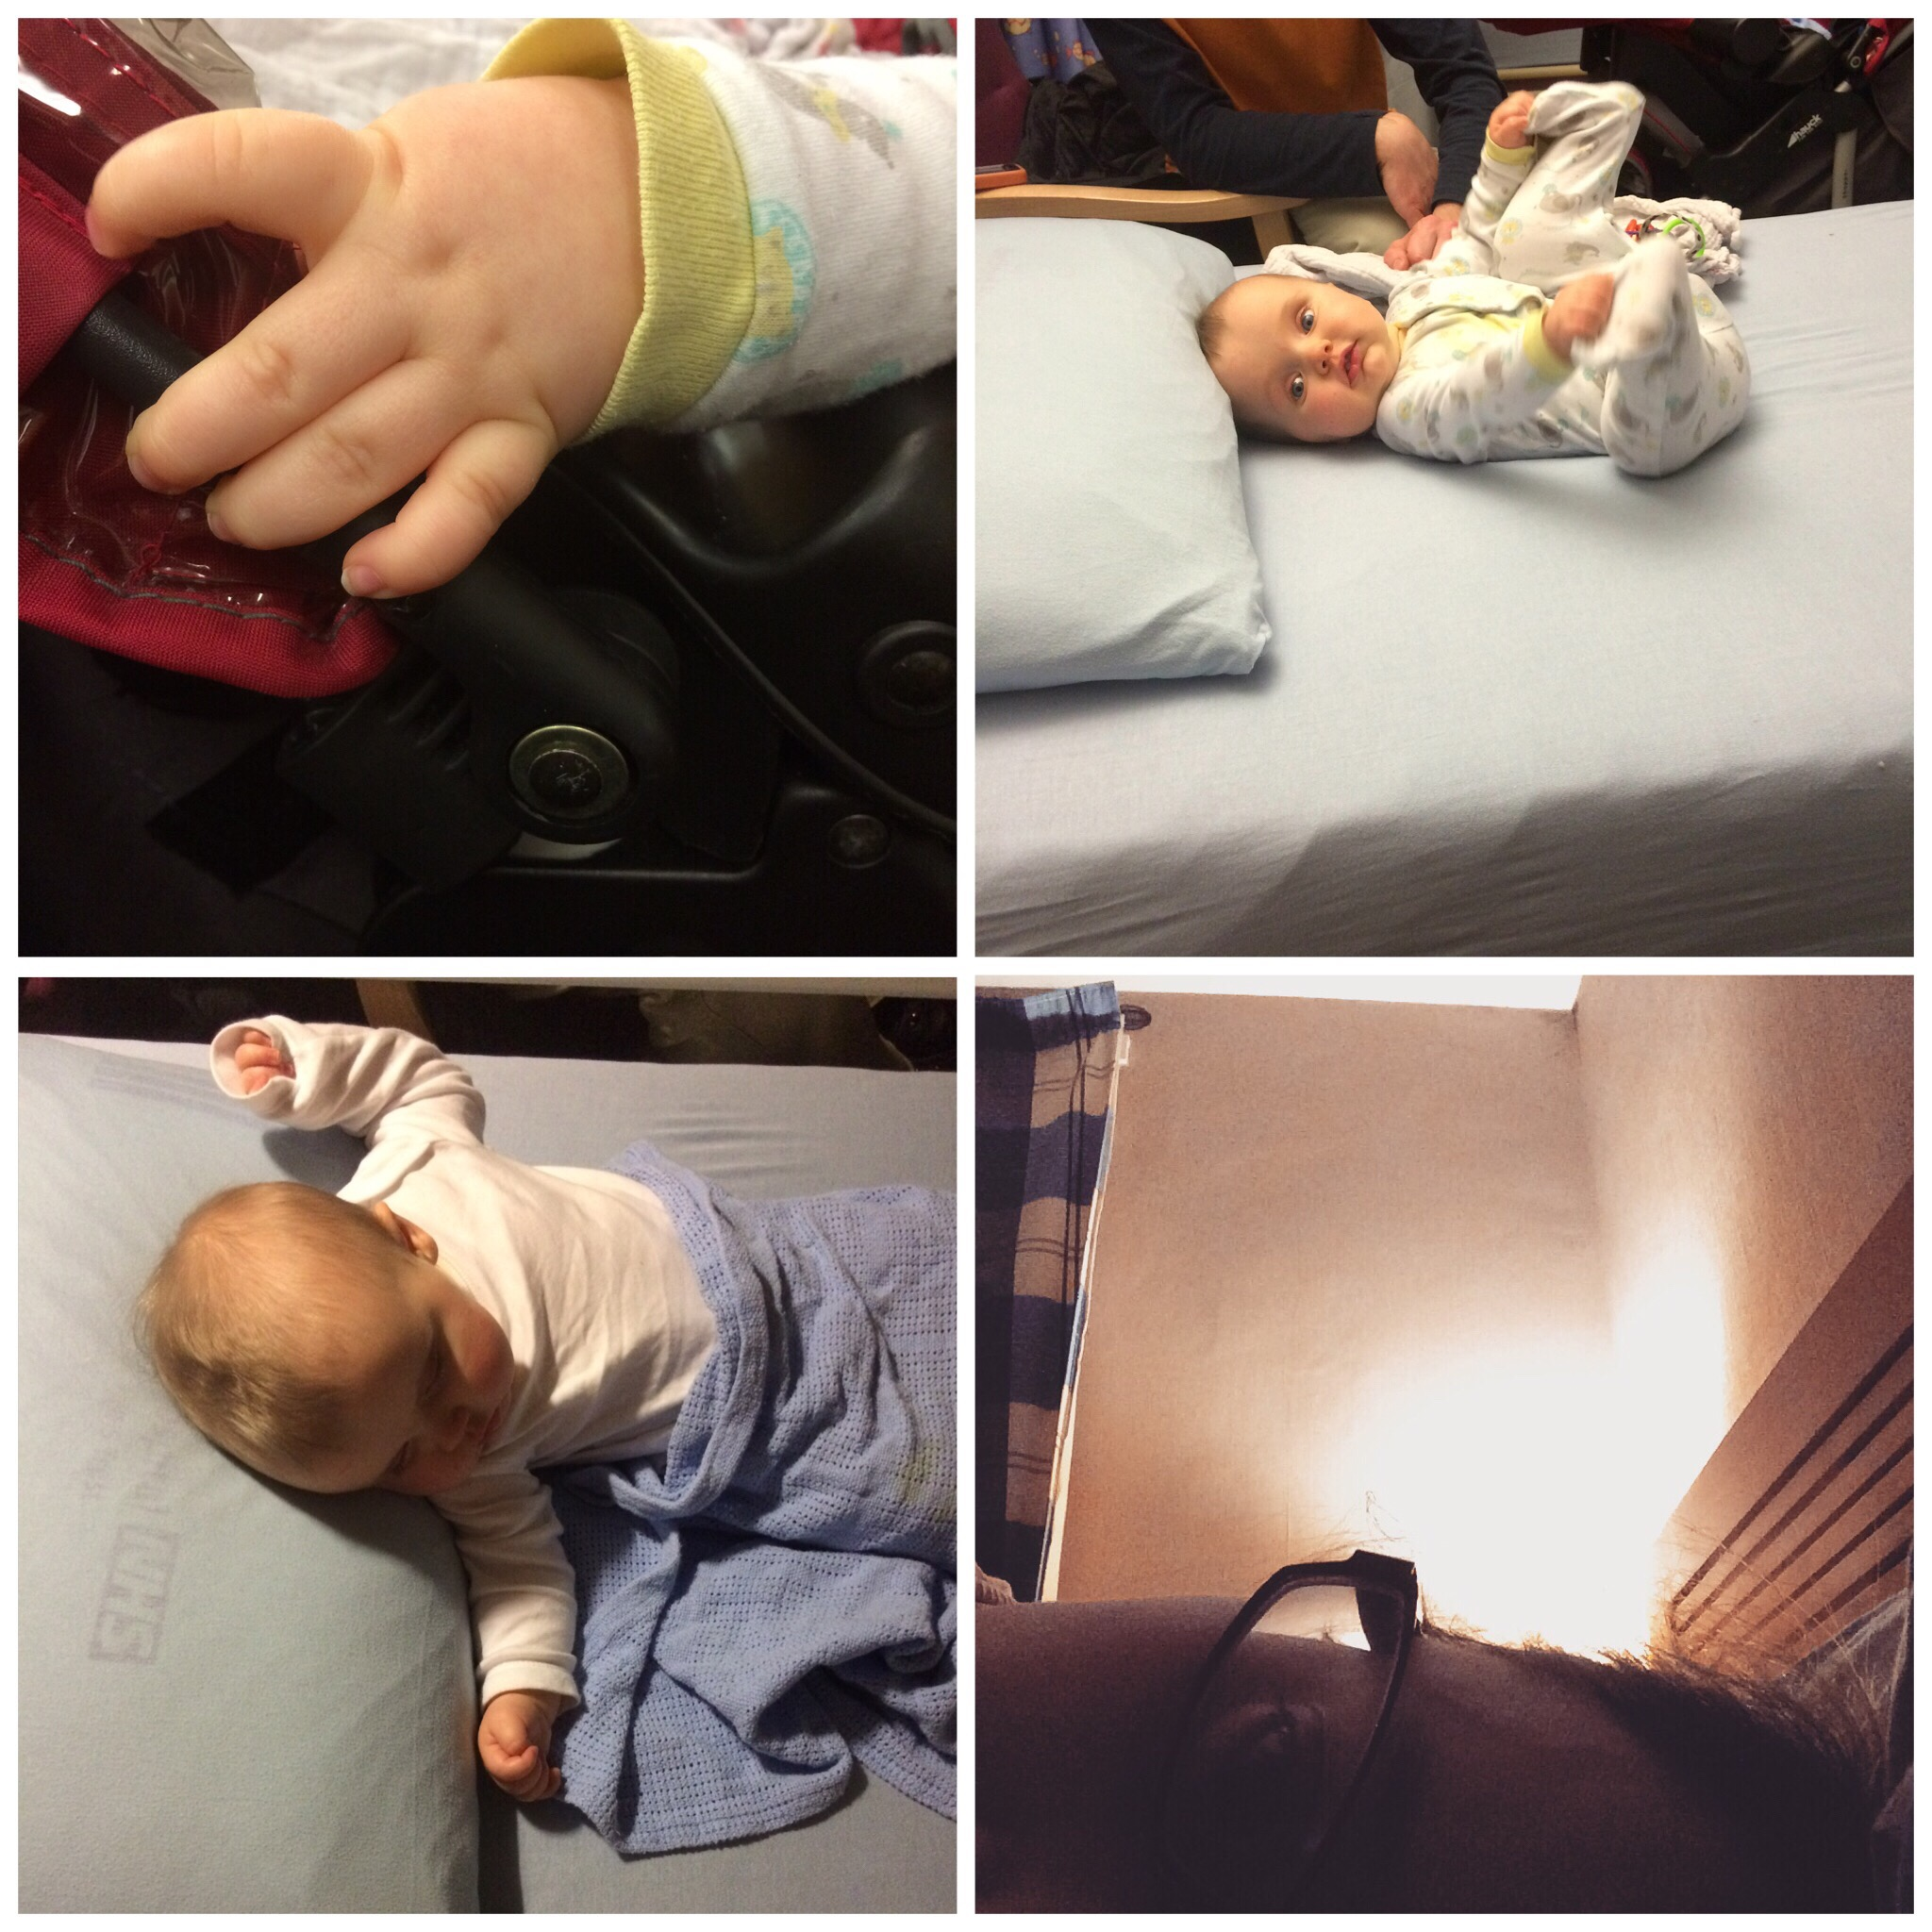 Our second trip to hospital this week